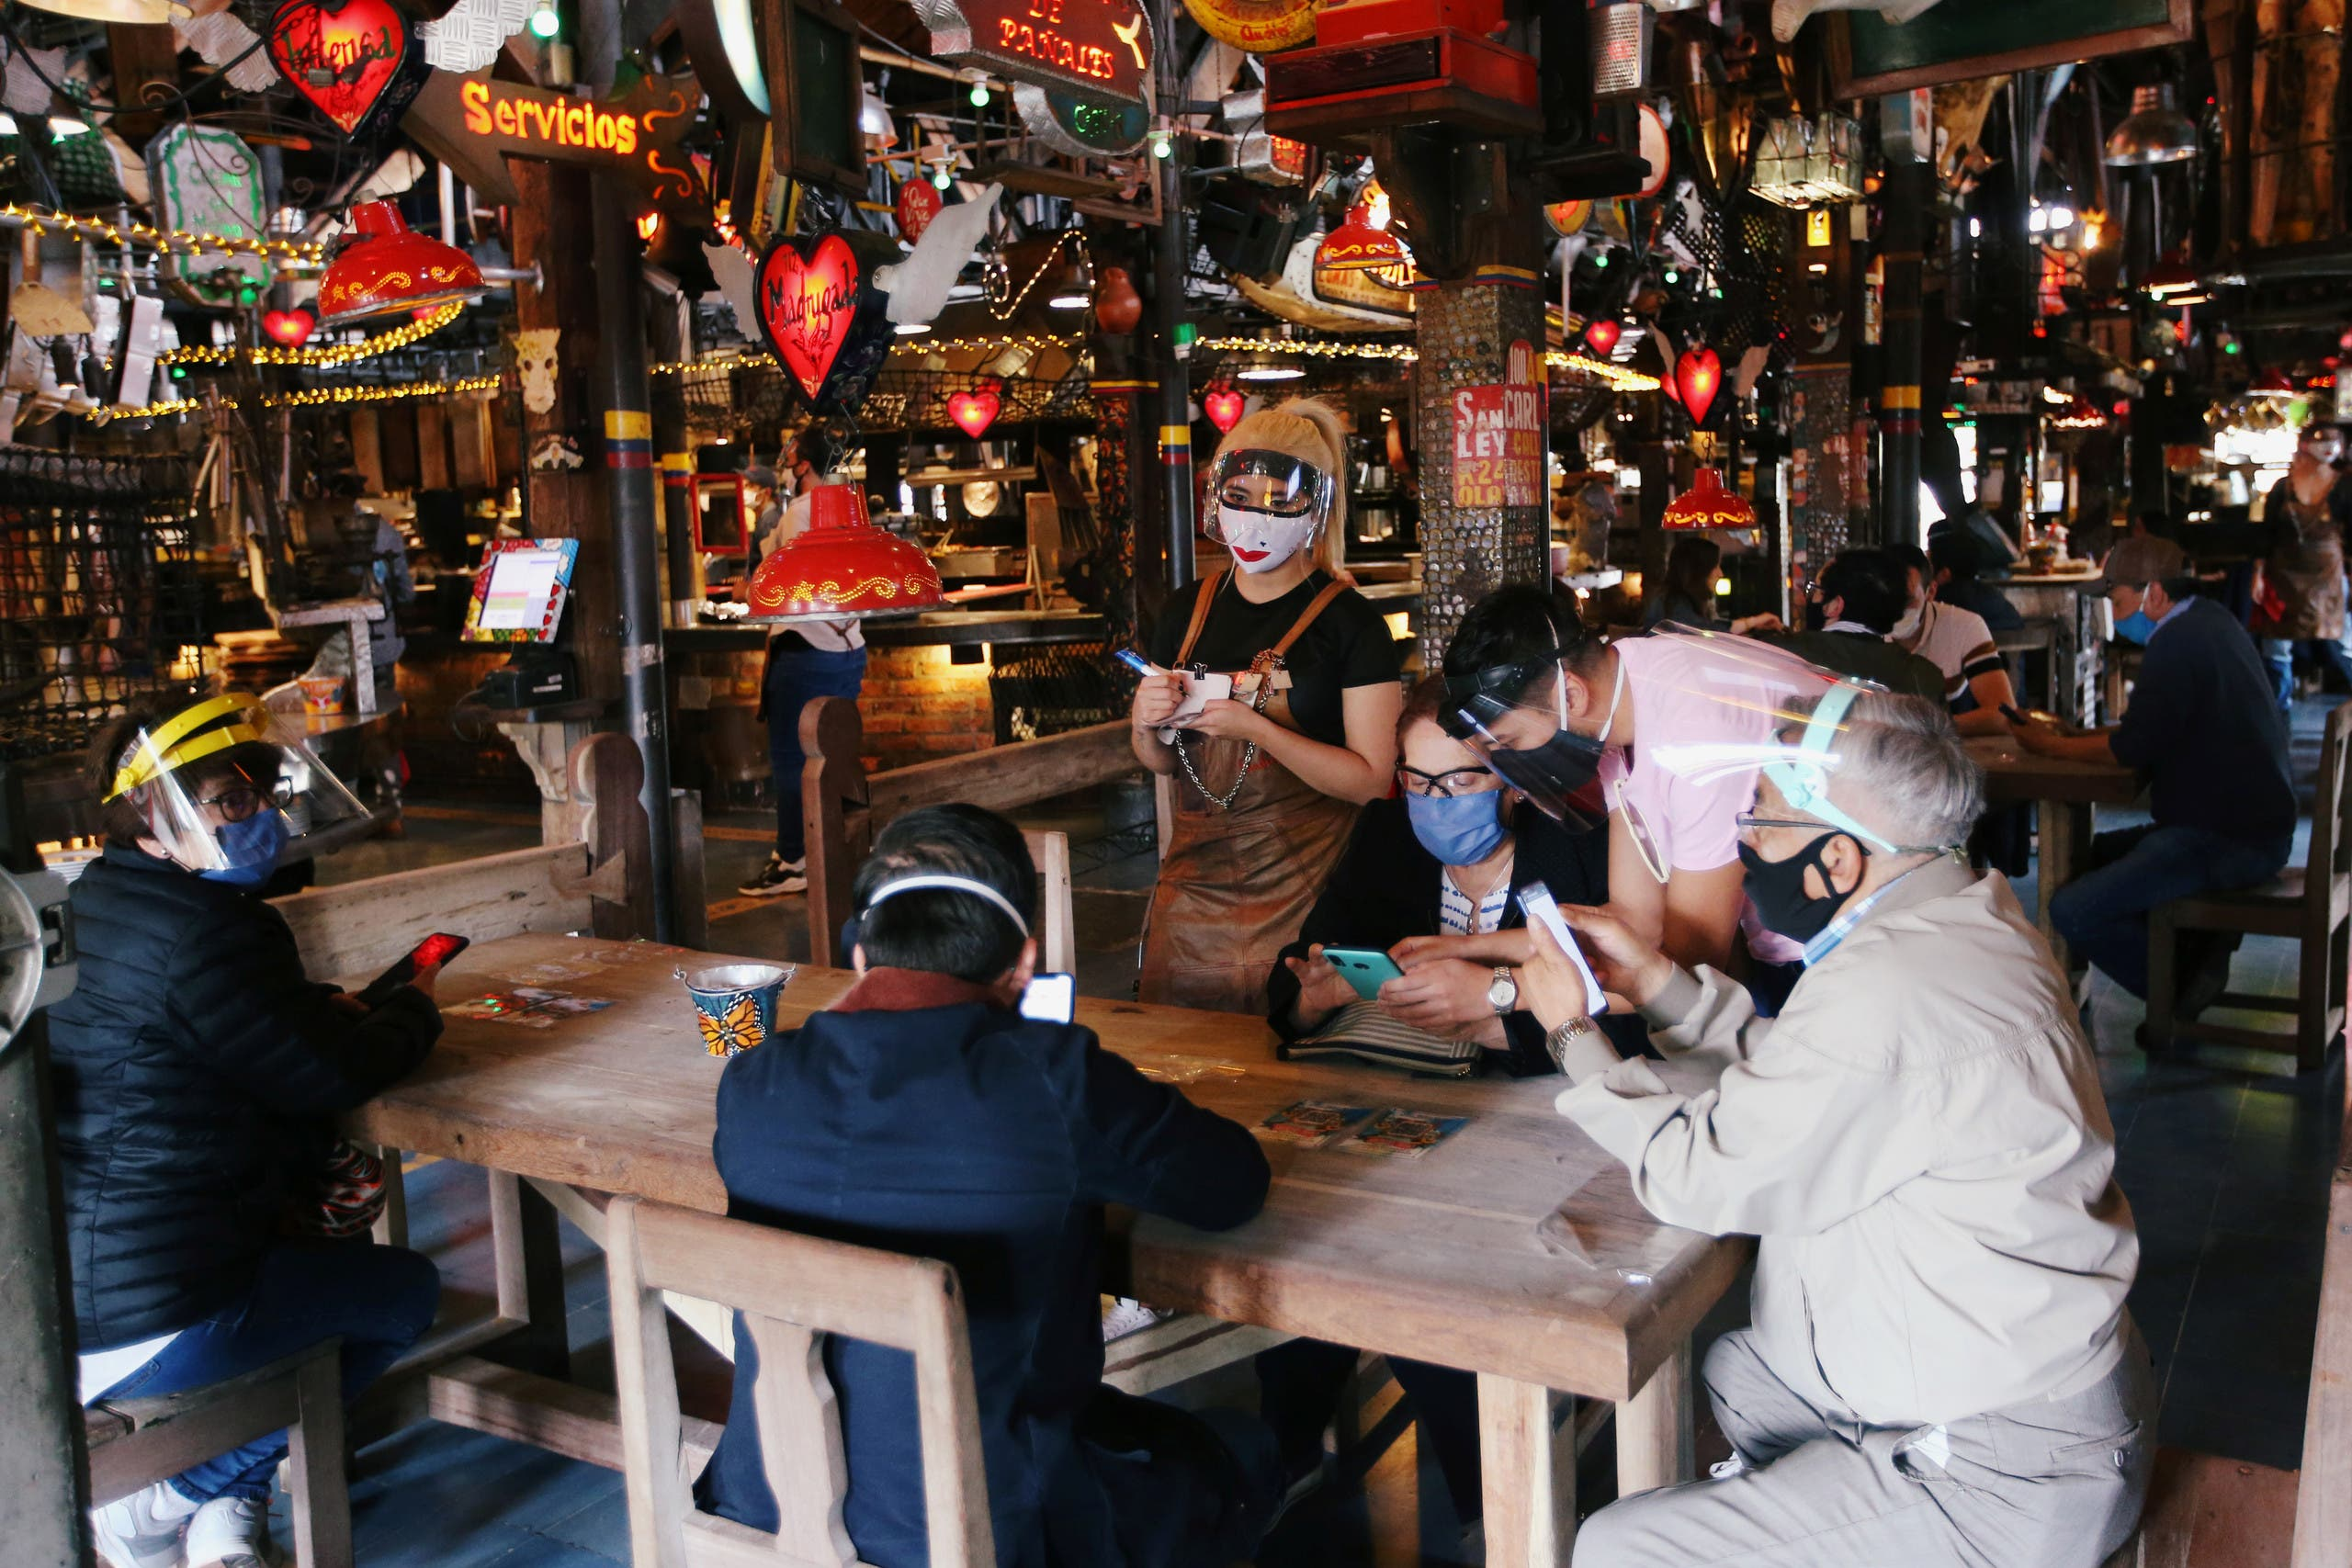 Customers wearing protective masks talk to a waiter at the Andres Carne de Res restaurant, amidst the coronavirus disease (COVID-19) outbreak, in Chia, (Reuters)